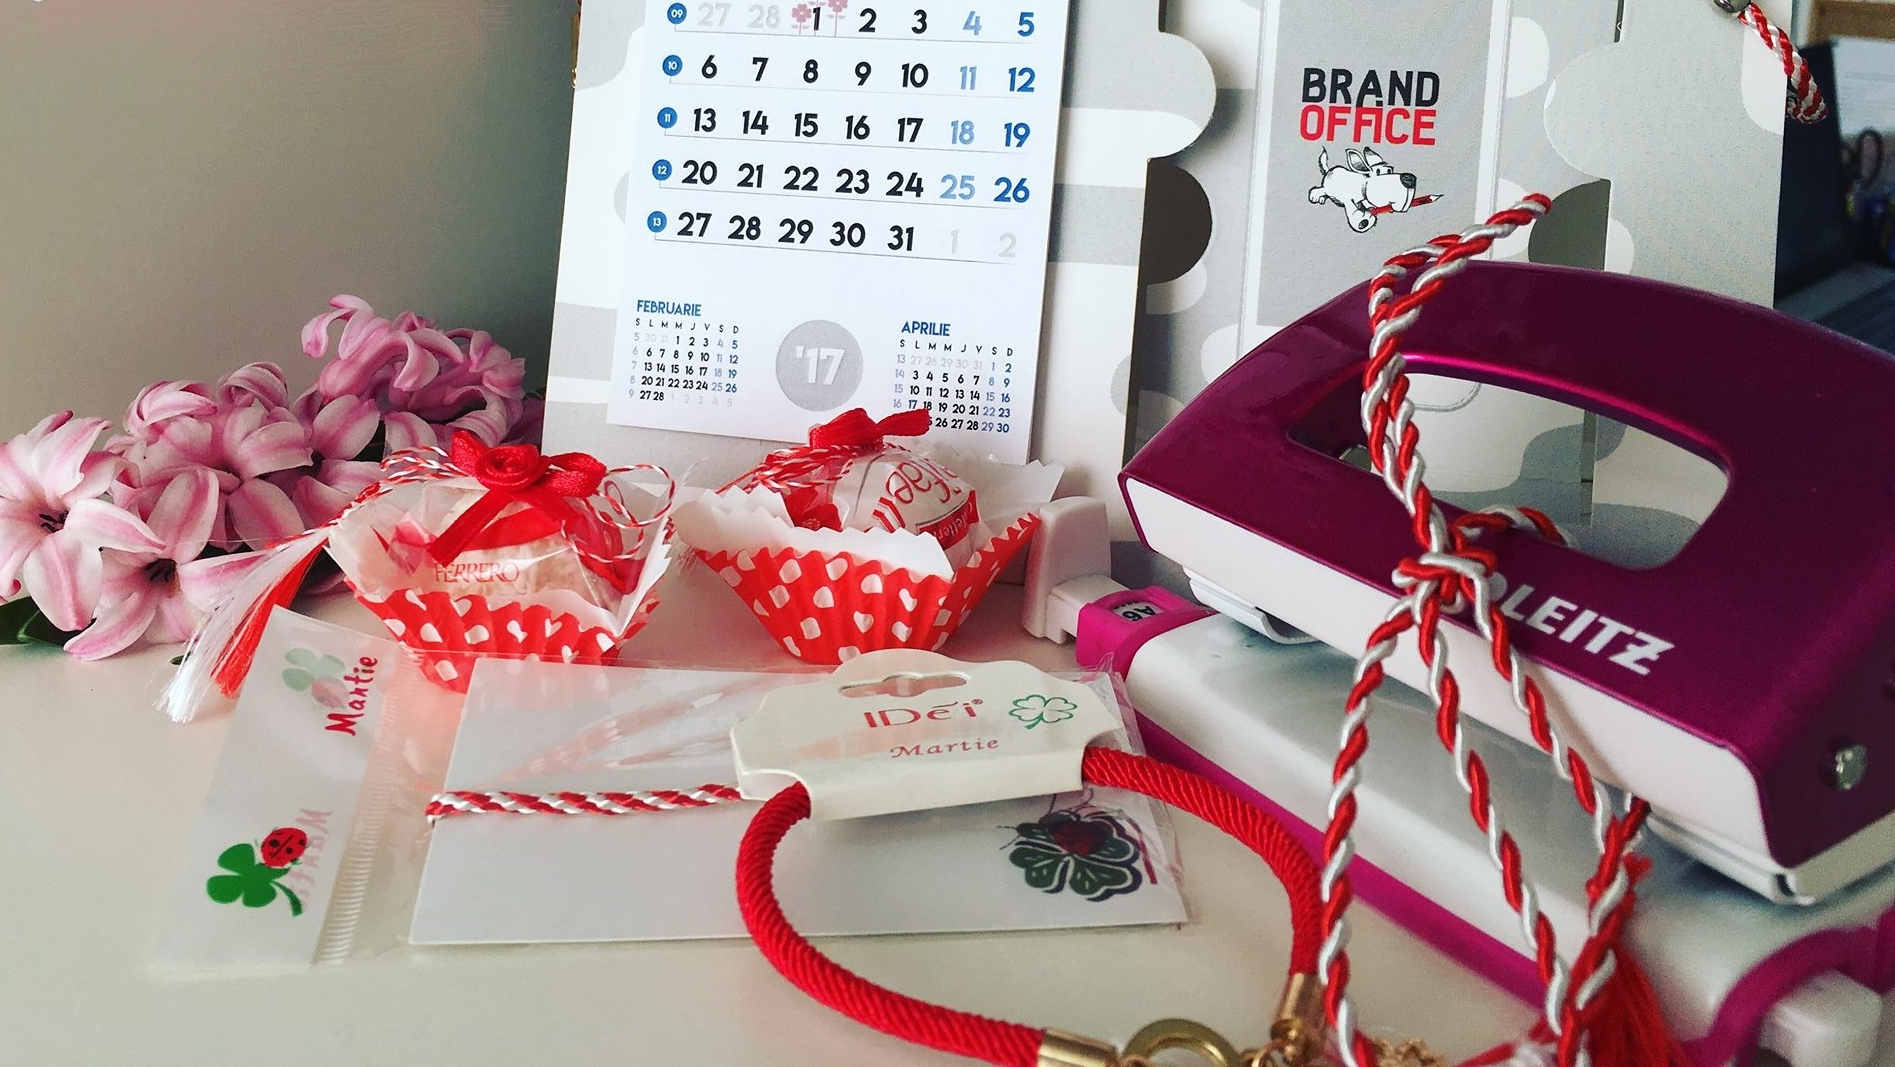 brand office gifts at paperworld middle east